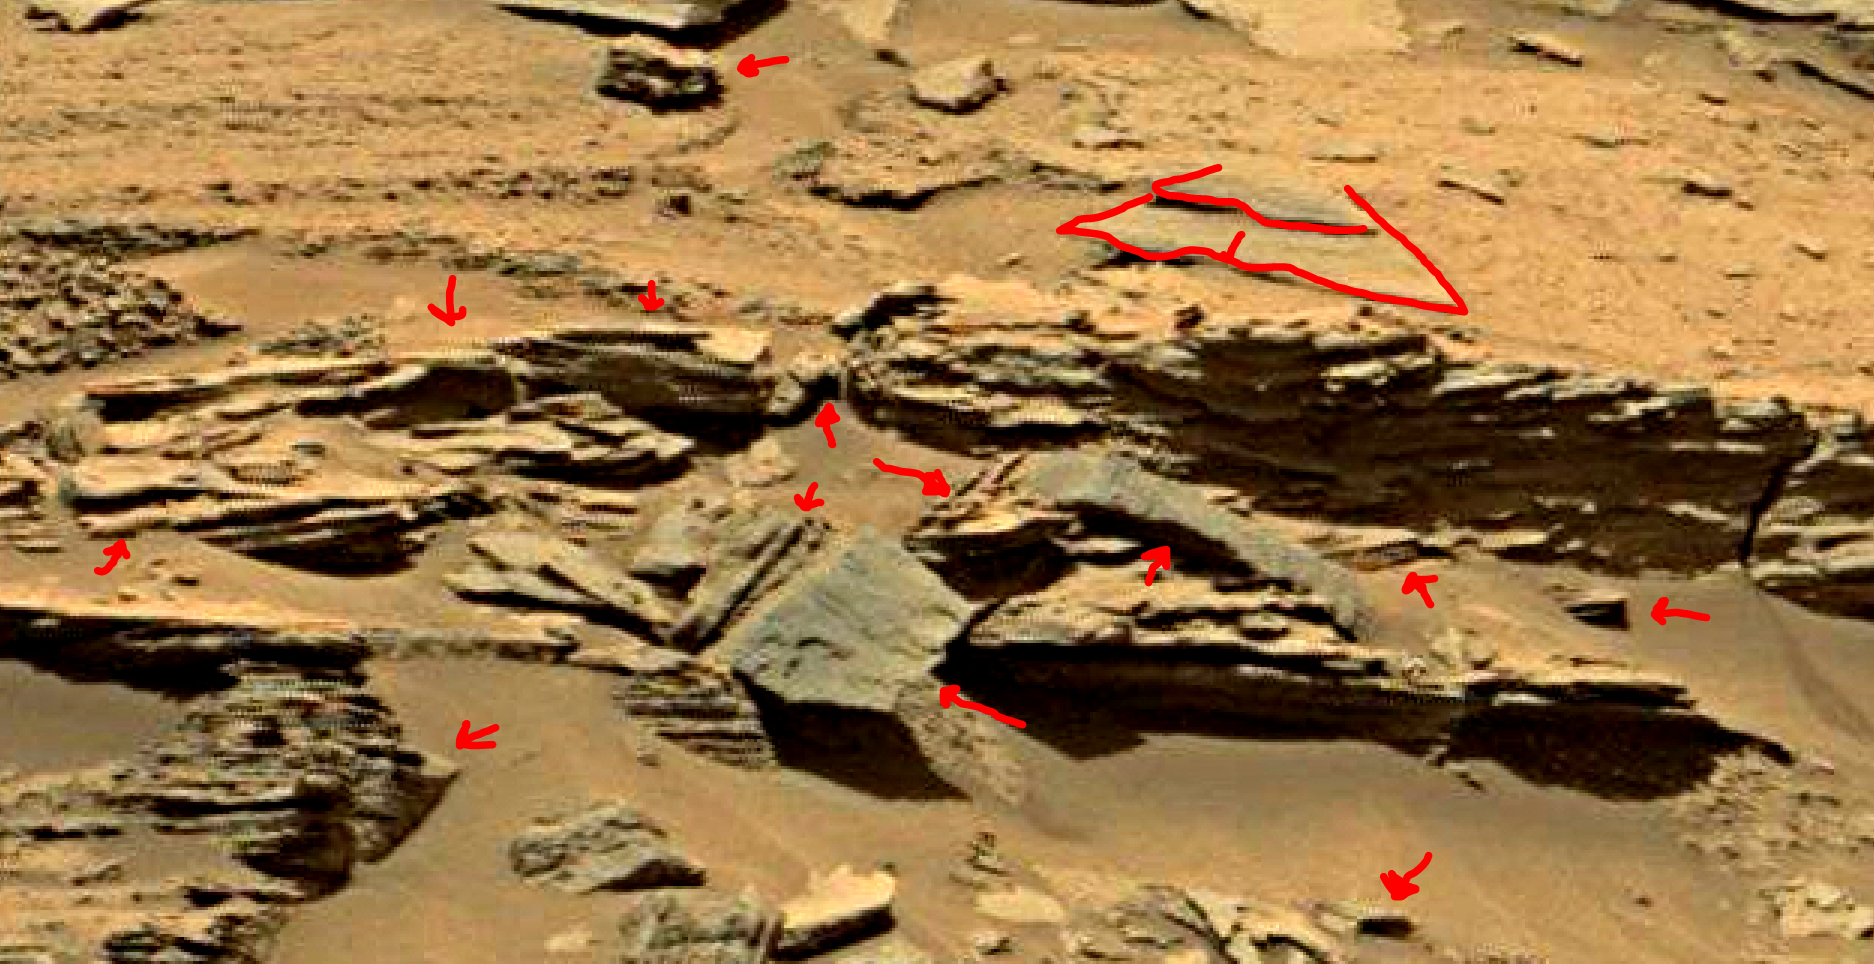 mars sol 1353 anomaly-artifacts 30-1a was life on mars